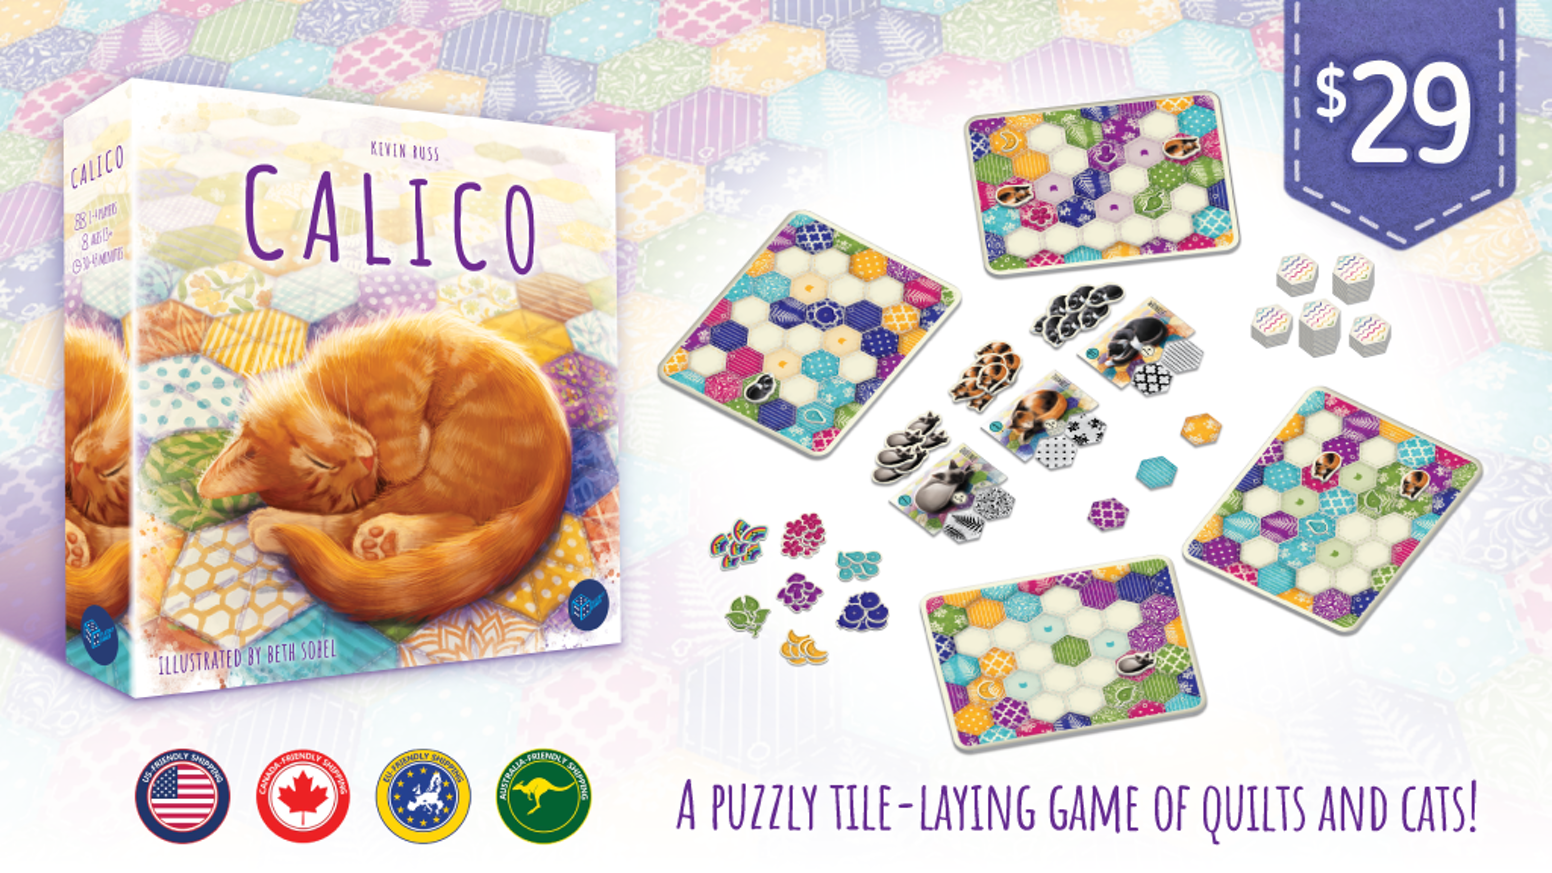 A puzzly tile-laying game of quilts and cats with gorgeous artwork by Beth Sobel!